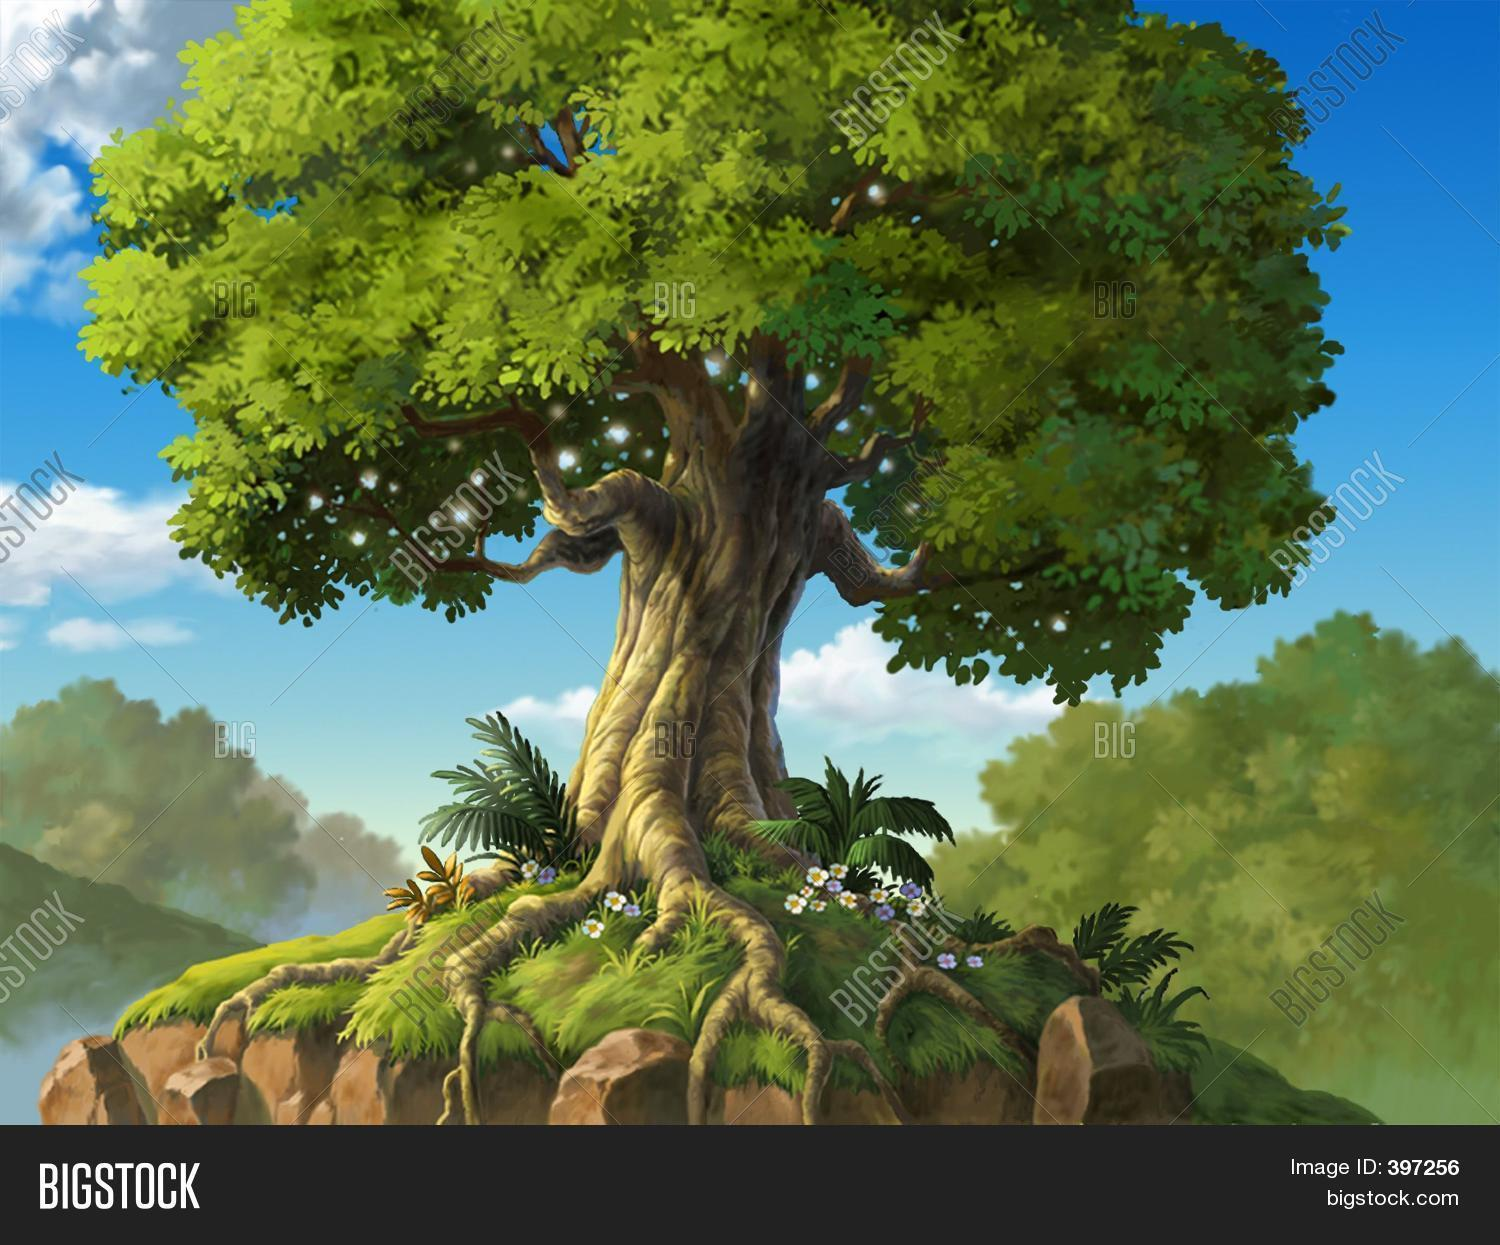 Tree With Roots Images Stock Photos &amp Illustrations